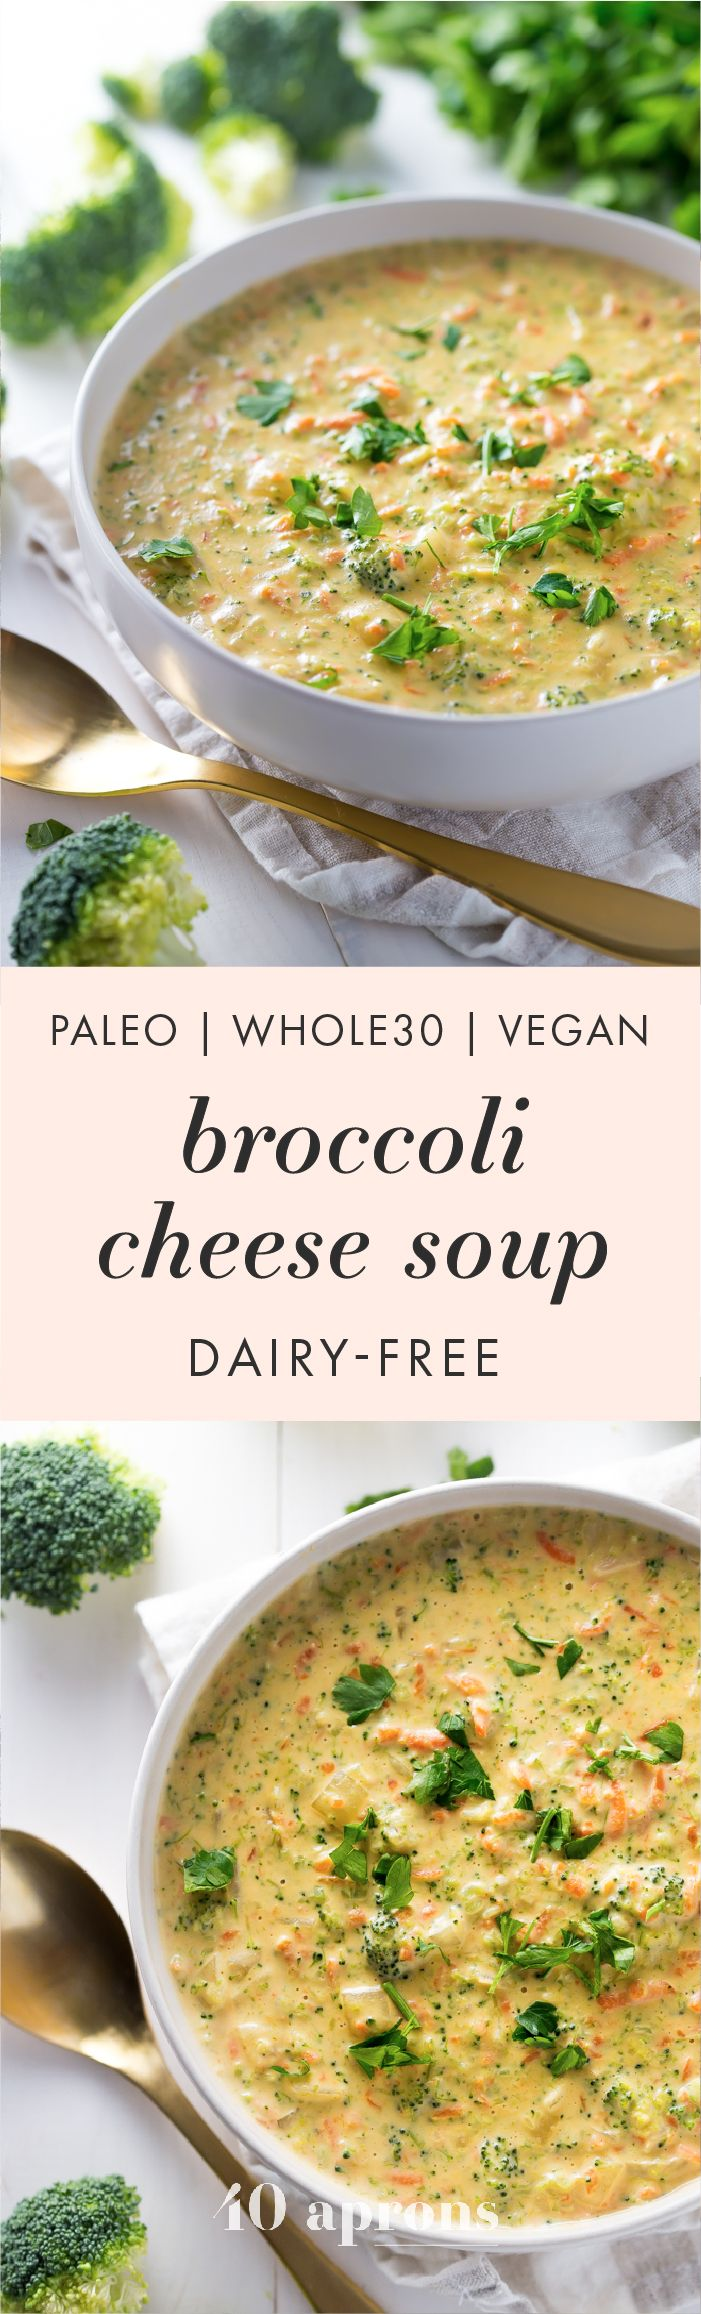 This paleo broccoli cheese soup is rich and creamy, easy to make, and a perfect paleo fall recipe. Whole30 compliant and totally dairy-free, there's plenty of cheesy flavor with none of the lactose and no weird ingredients! You'll fall in love with this paleo broccoli cheese soup, and it'll definitely become one of your favorite paleo fall recipes.